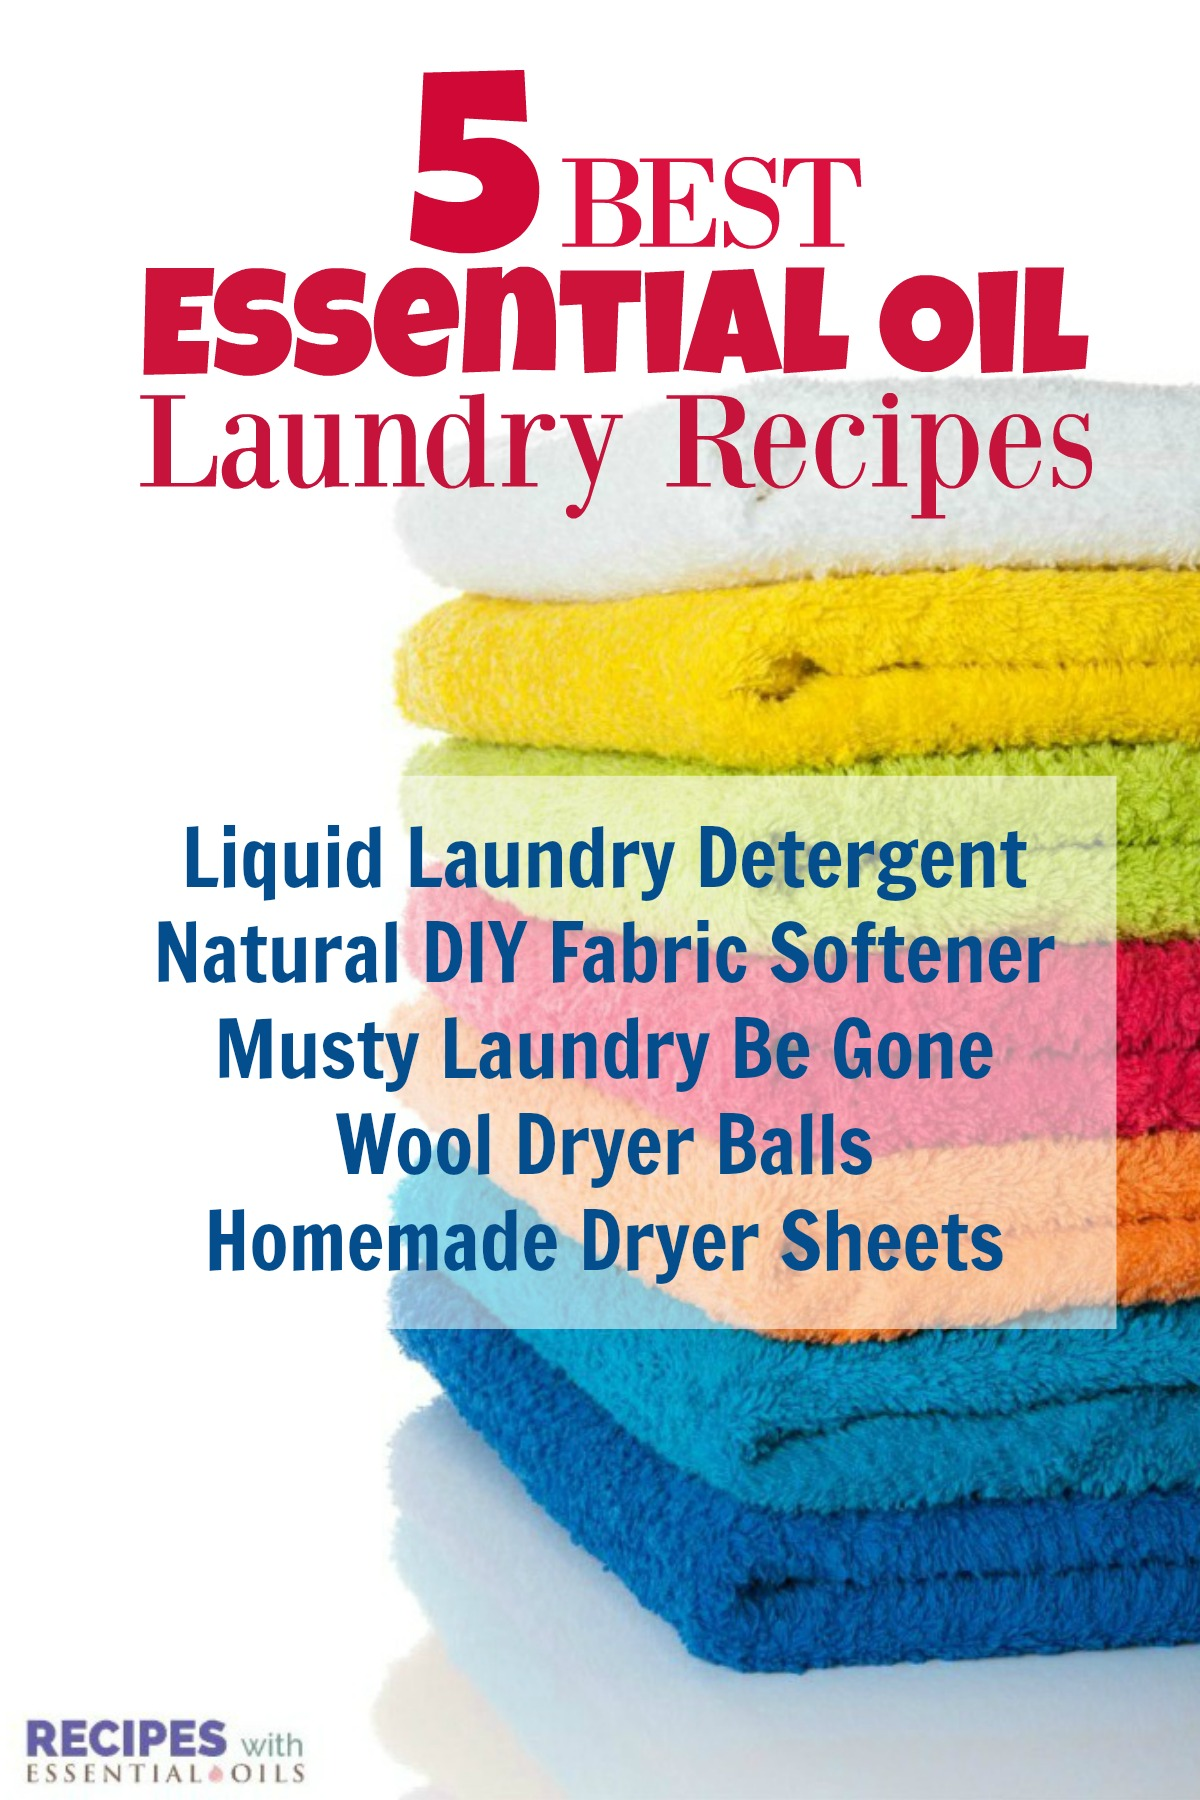 5 Best Essential Oil Laundry Recipes